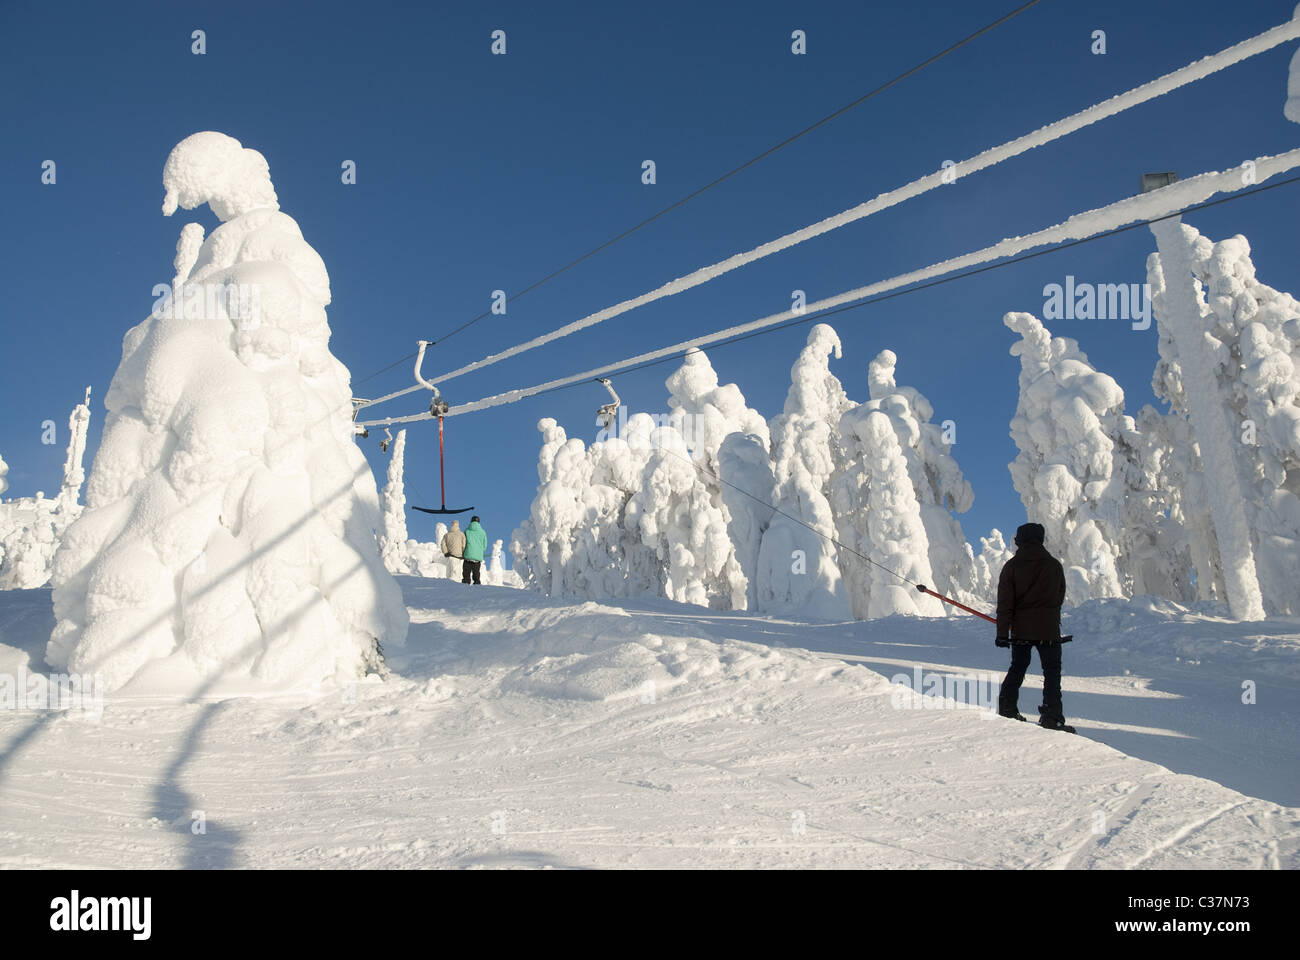 Skiers in a t-bar ski-lift in Ruka, Finland. - Stock Image